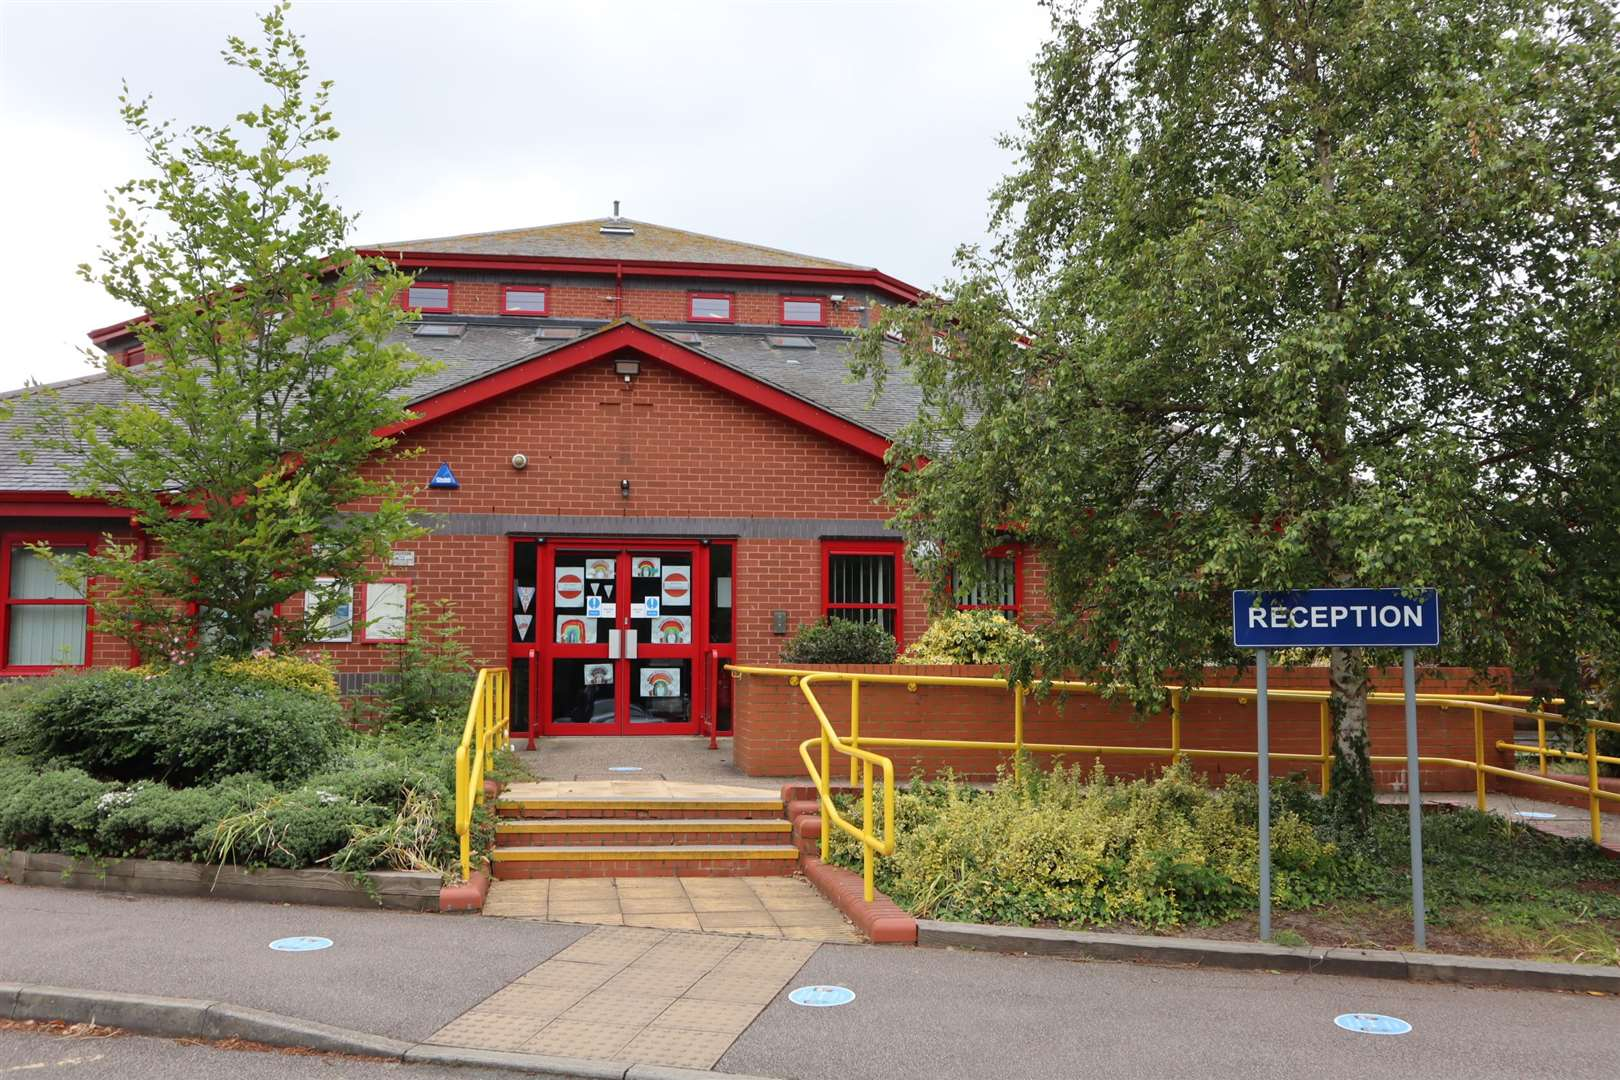 St George's Primary School in Minster, Sheppey